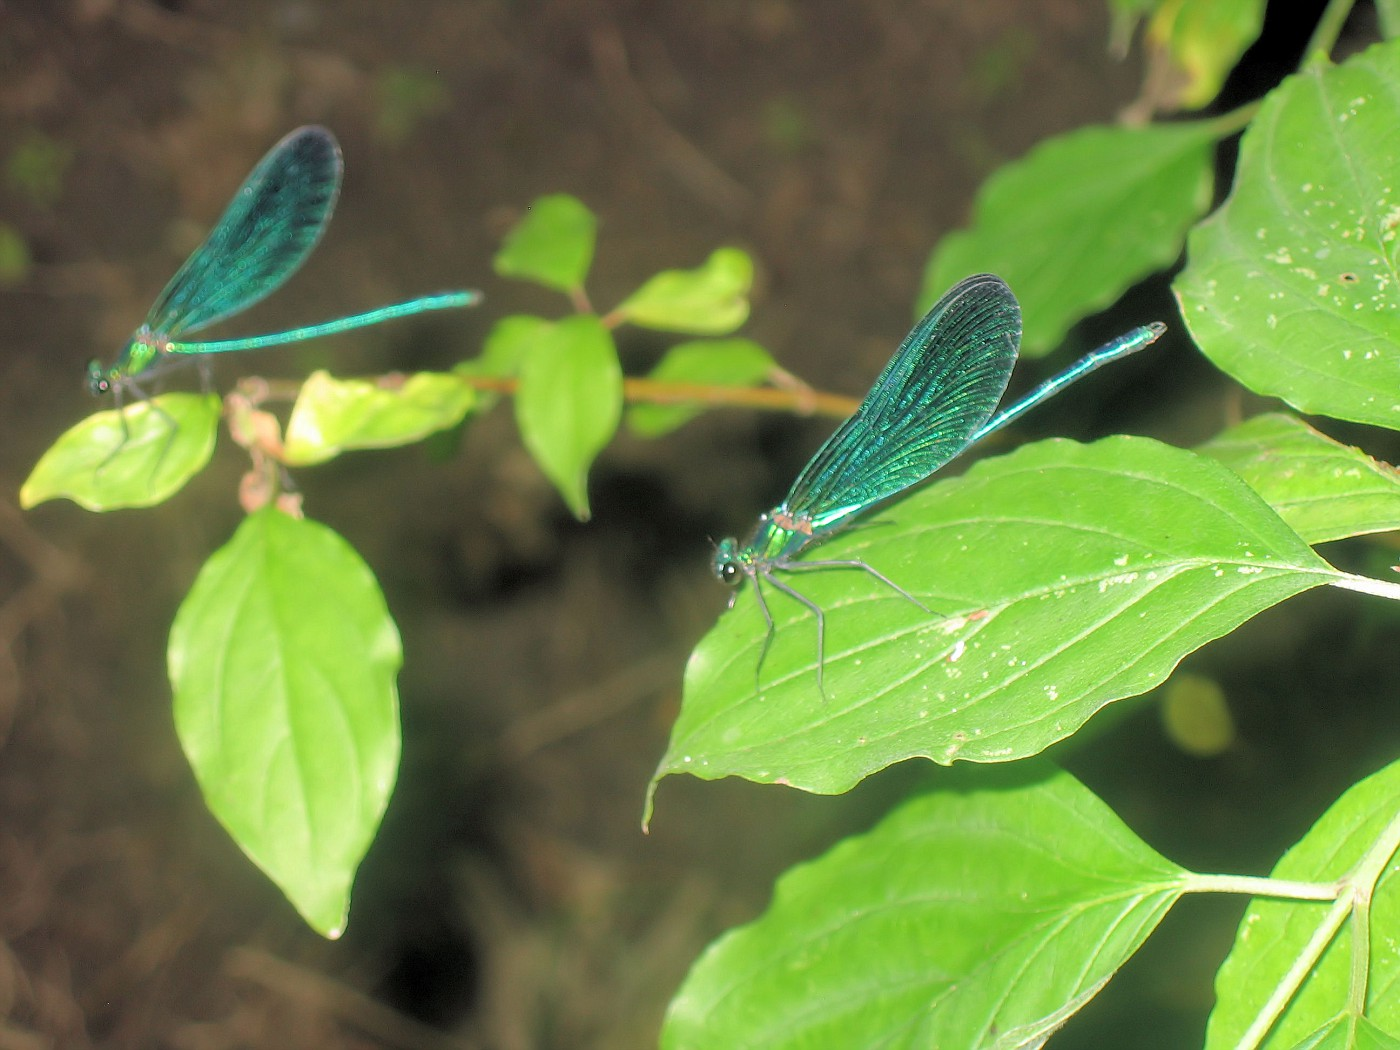 Two Dragonflies #1